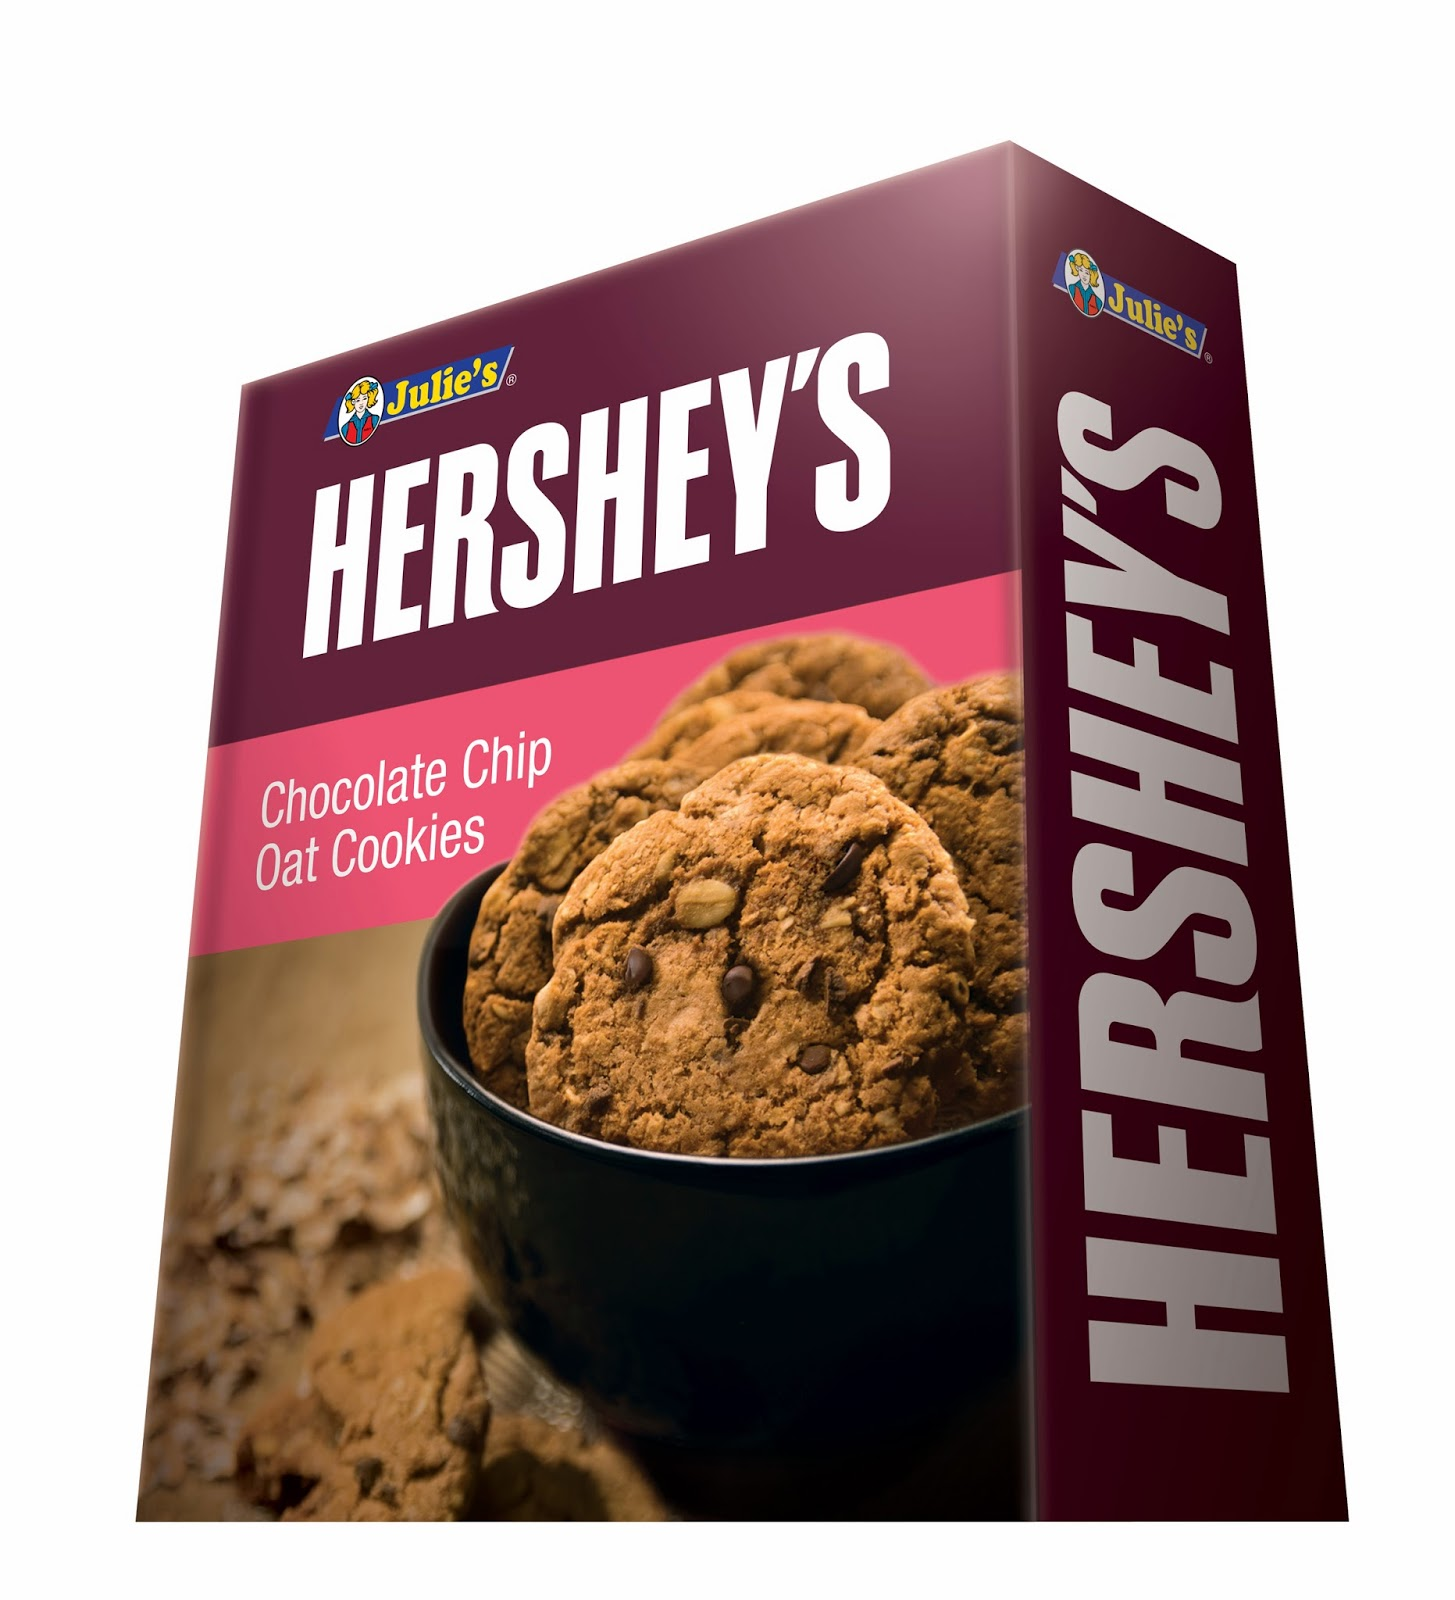 Julie's Hershey's Chocolate Chip Oat Cookies